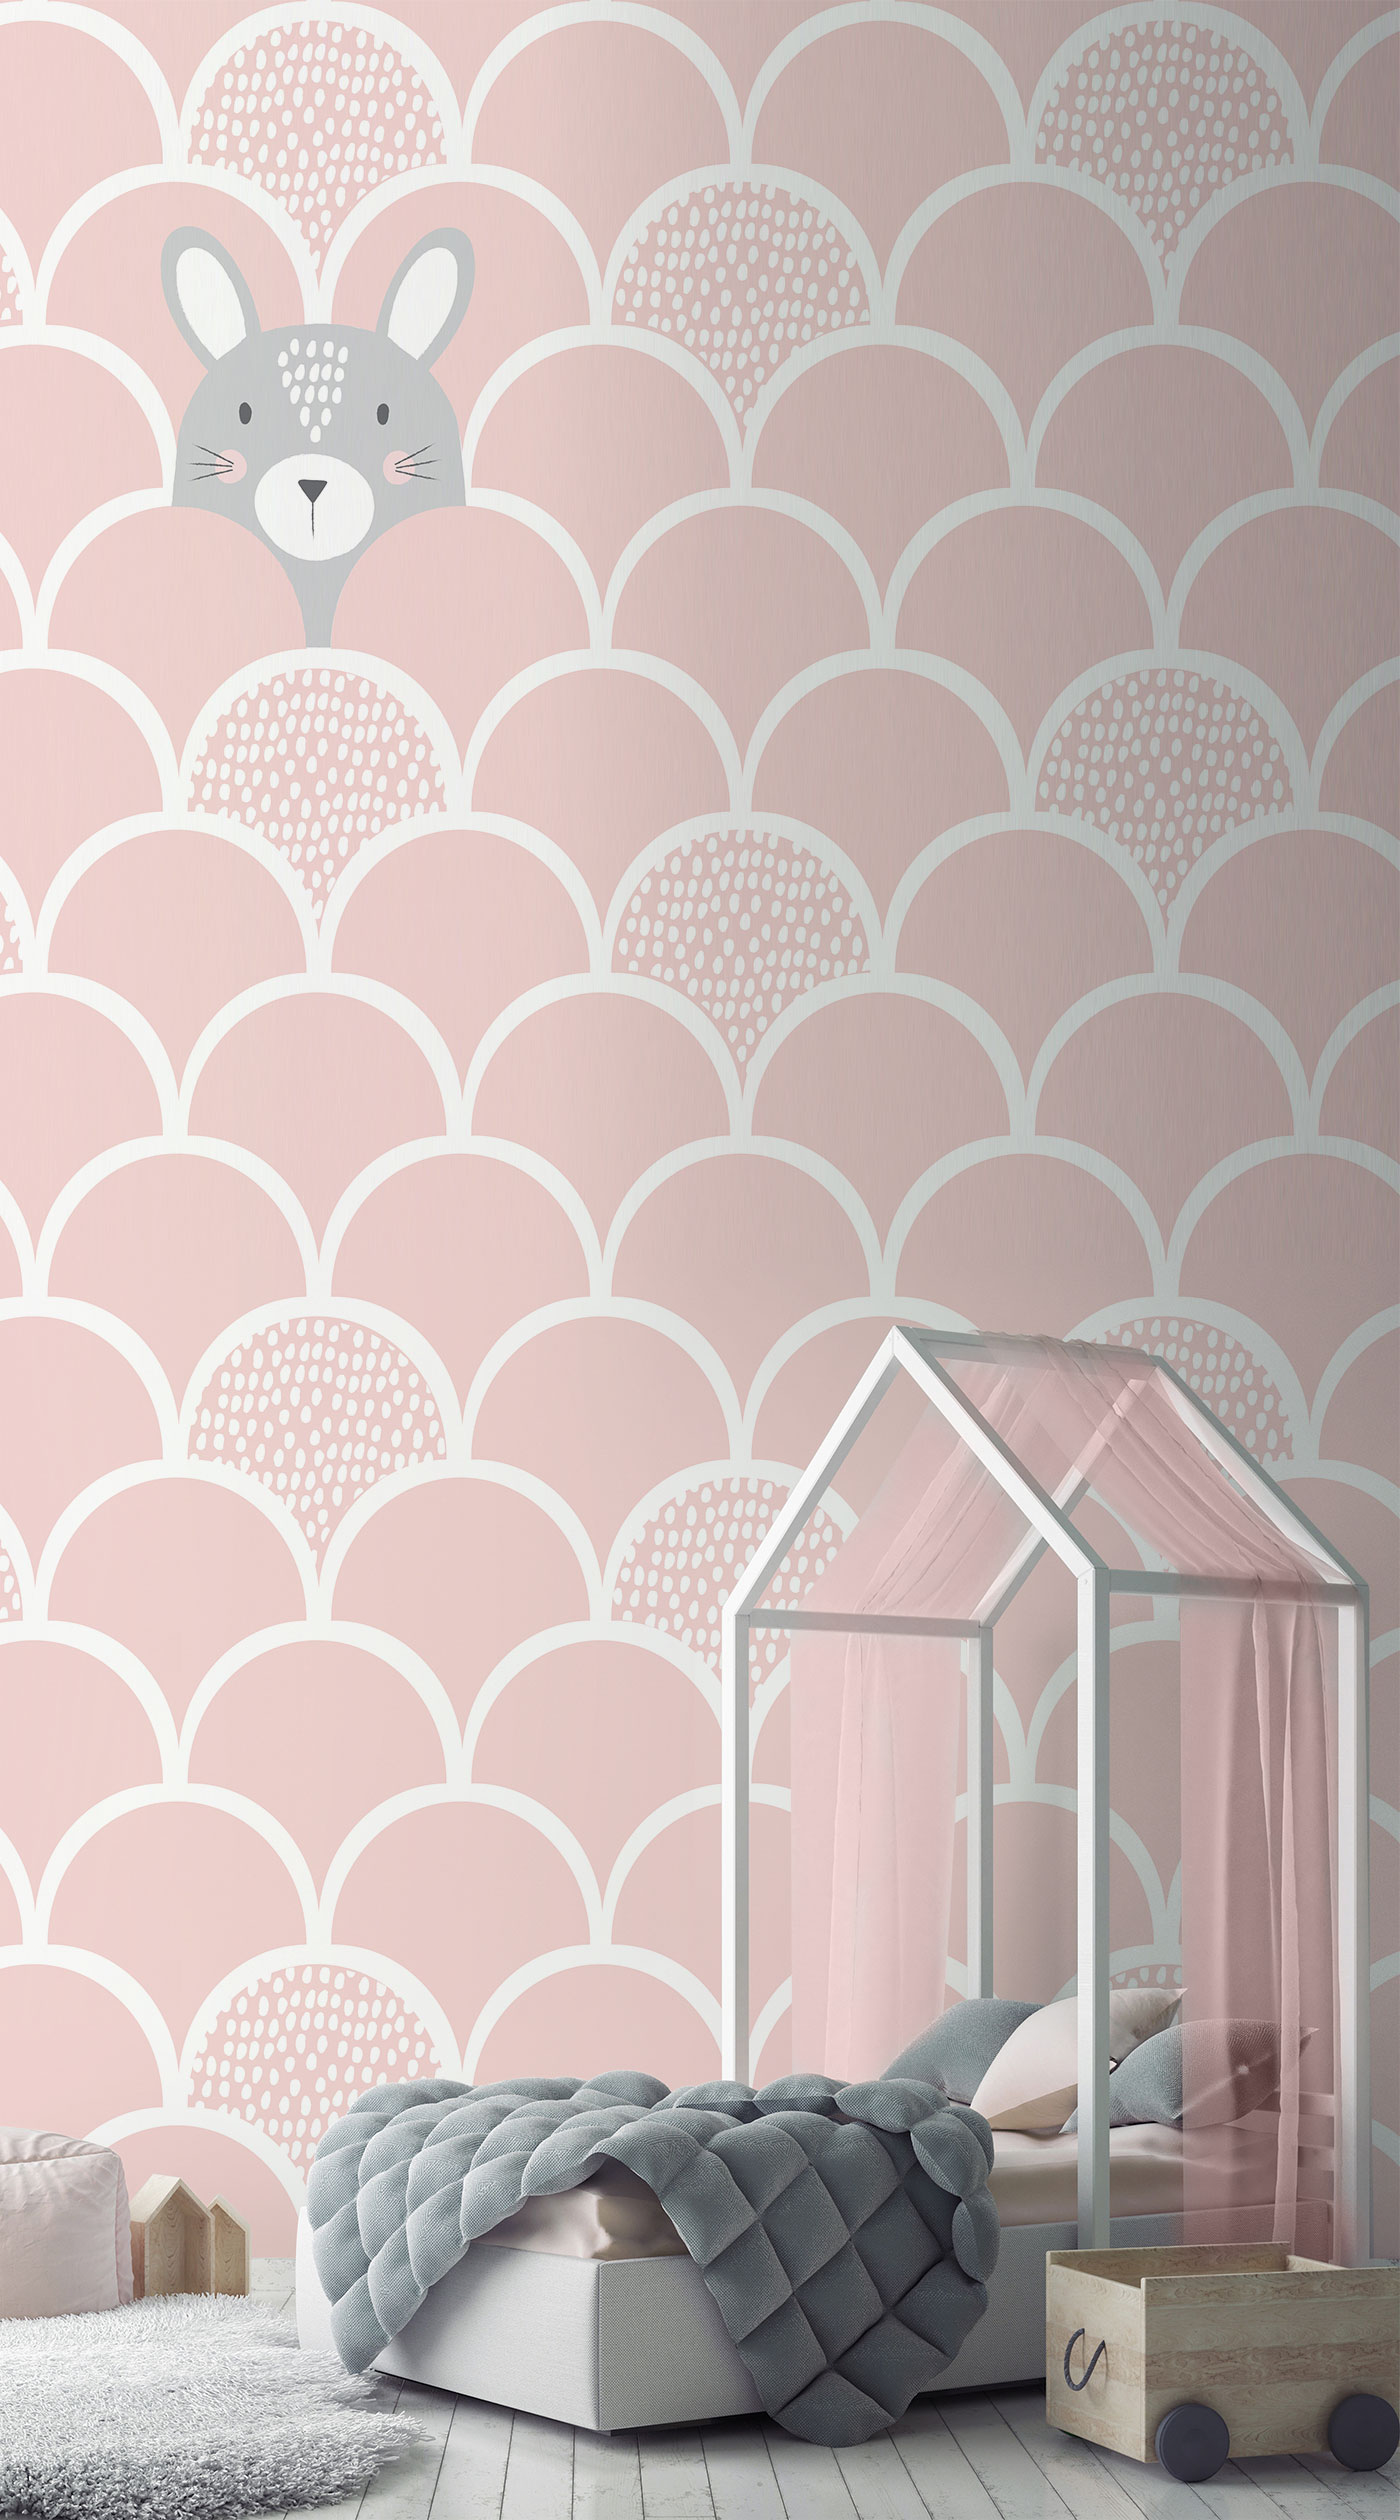 Wandtapete Rosa Millennial Pink How To Achieve The Hot Pink Trend With Murals